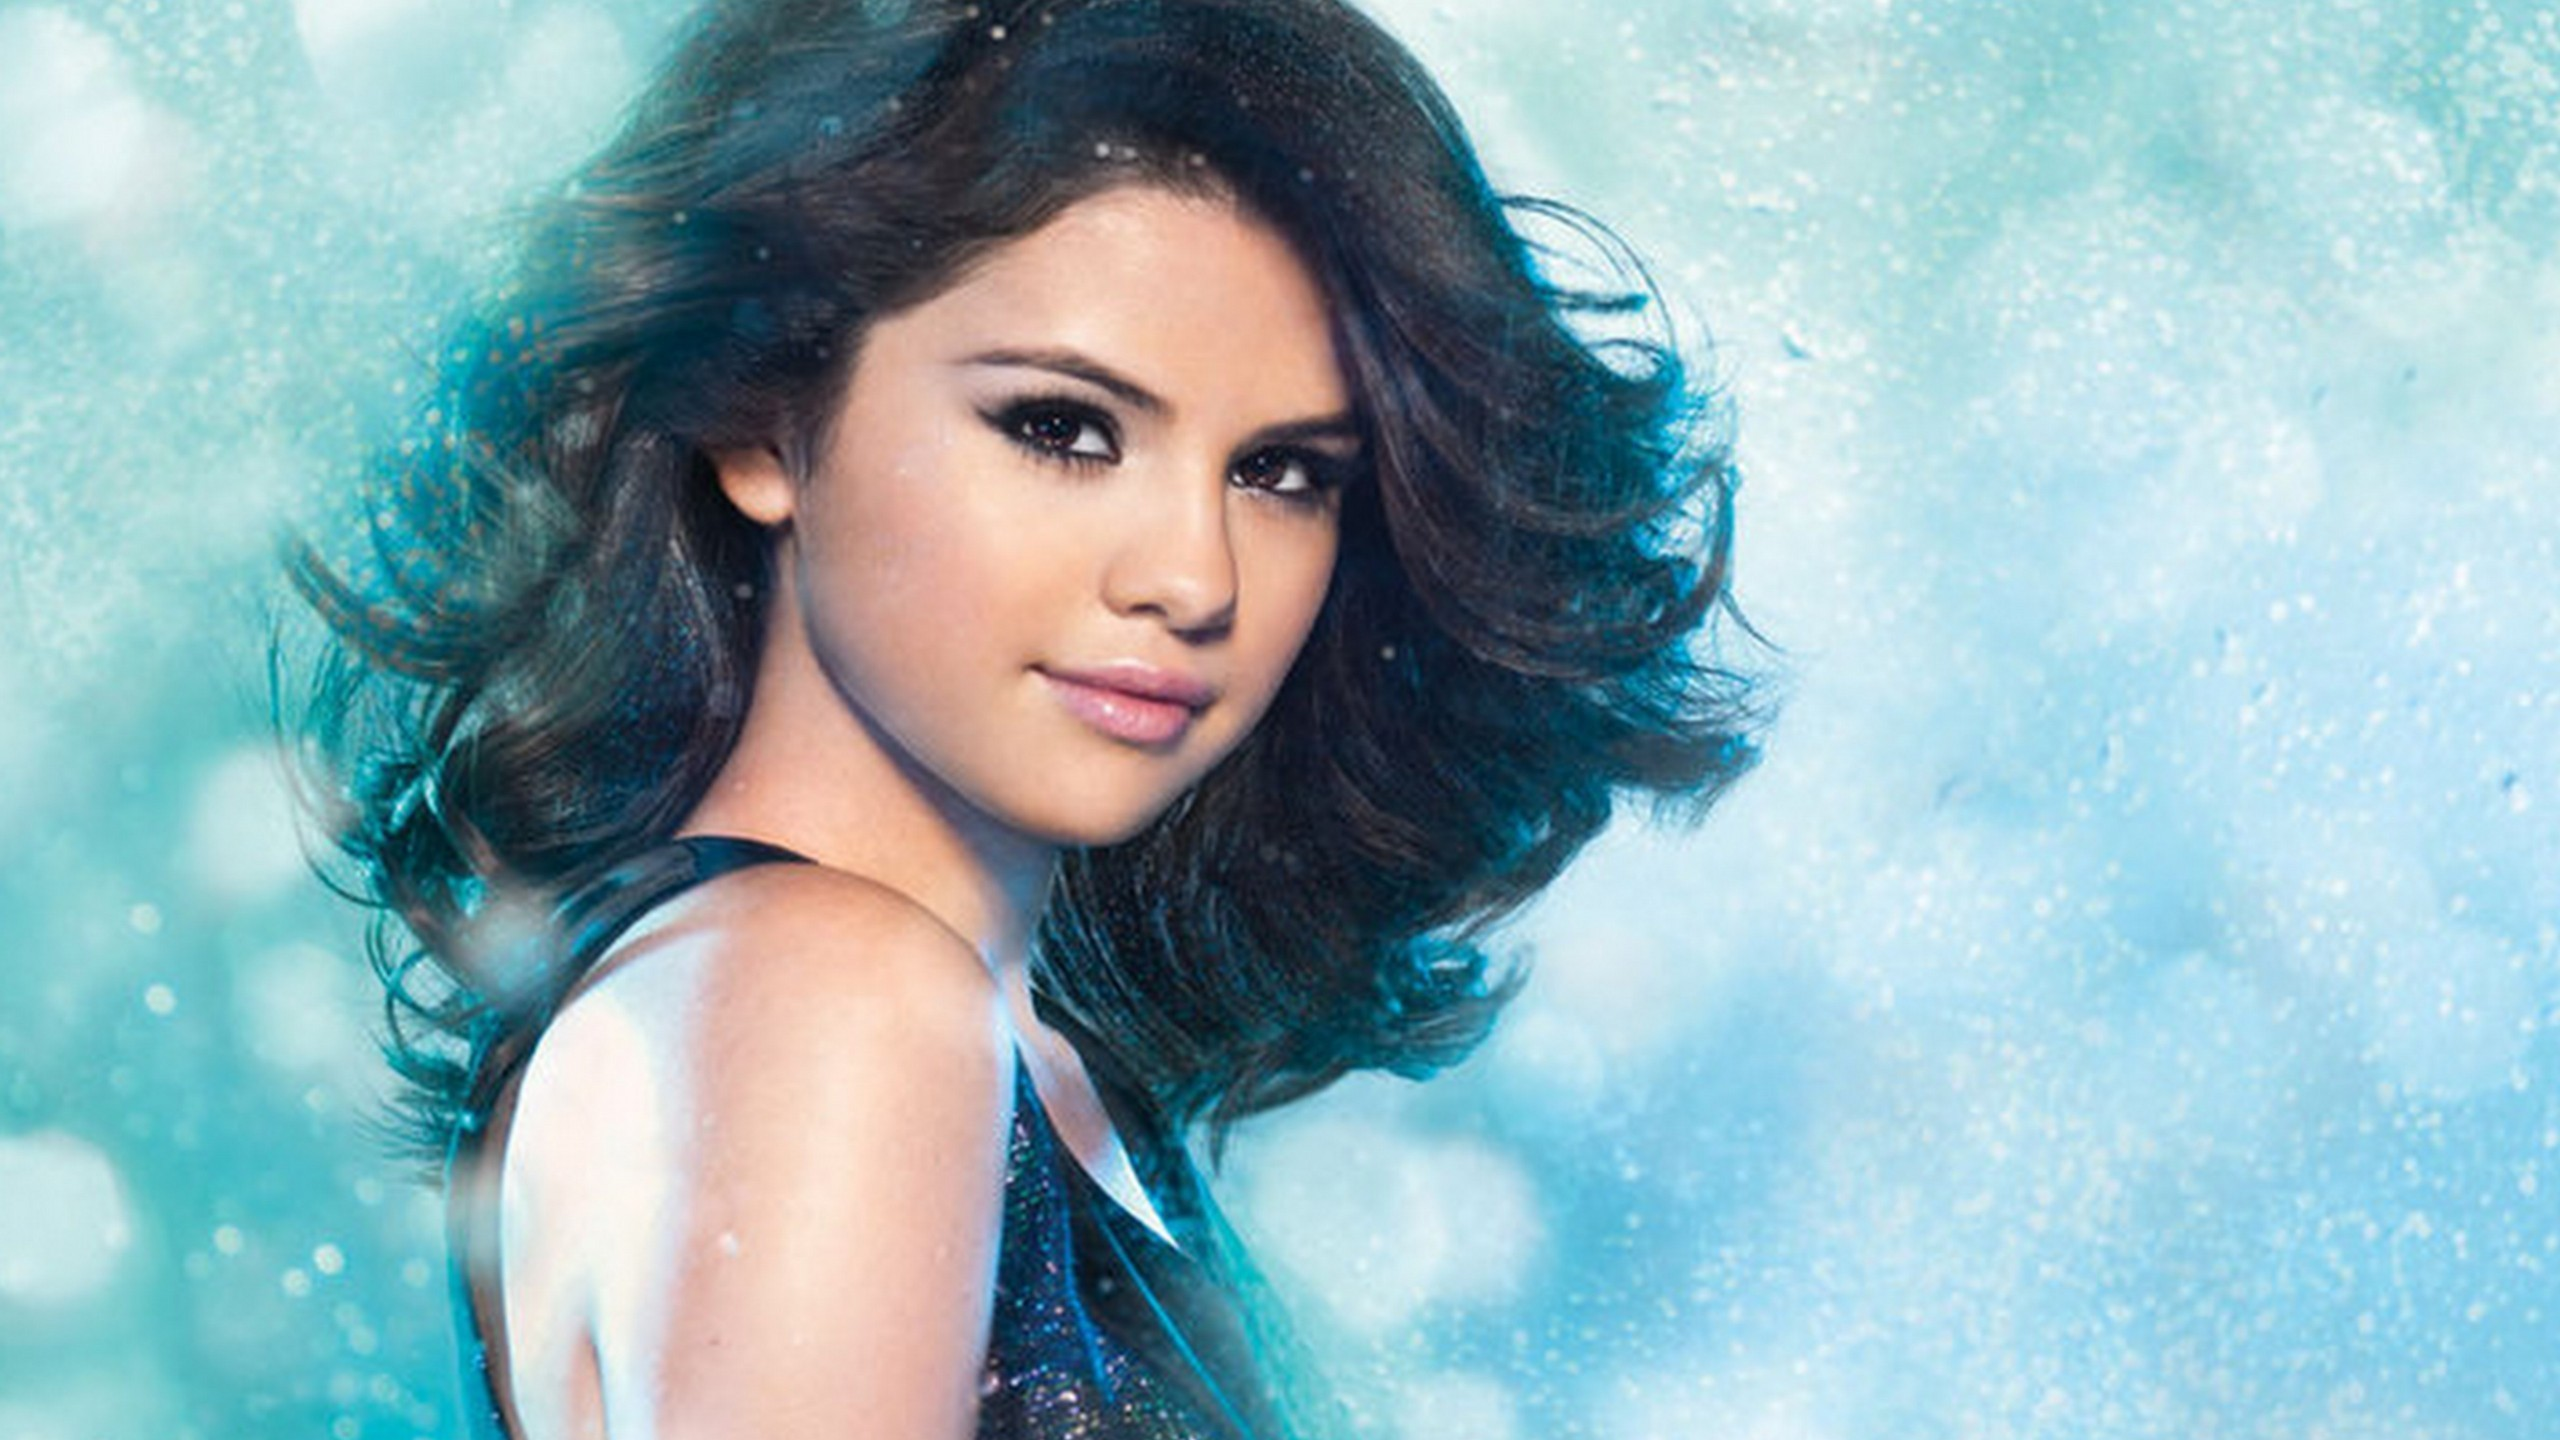 selena gomez HD Wallpapers 2560x1440